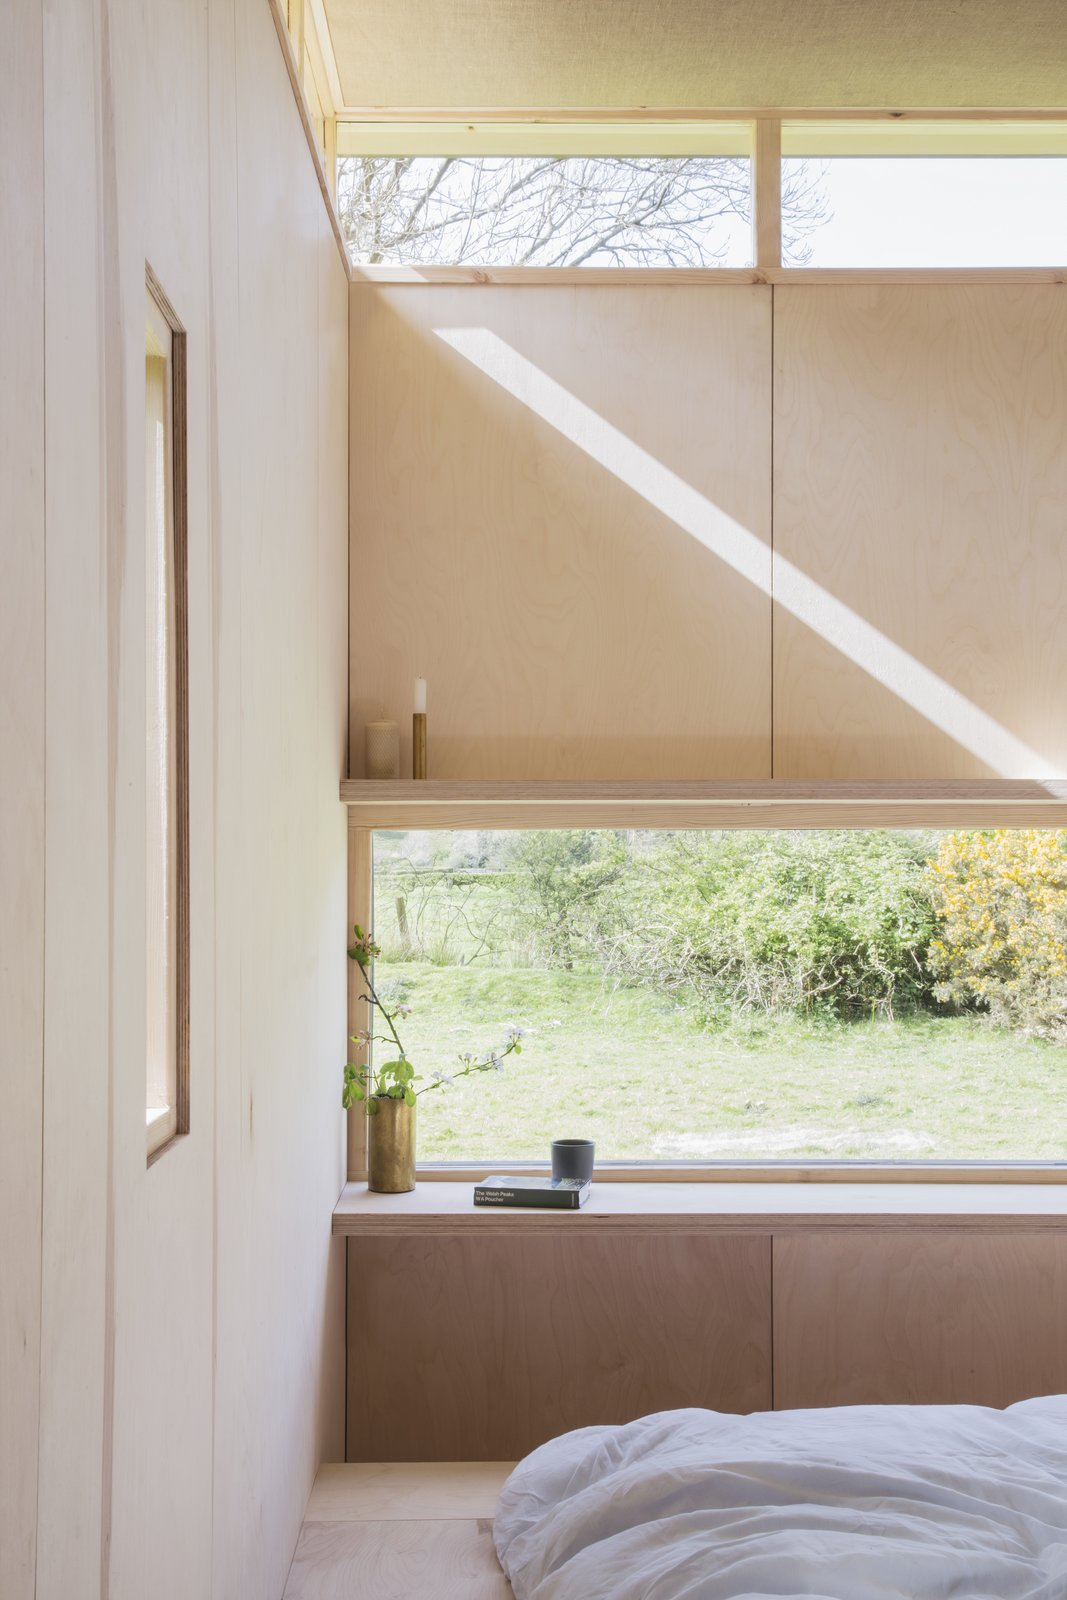 Bedroom, Bed, Shelves, Light Hardwood Floor, and Storage A long window frames panoramic views of the setting beyond.   Photo 8 of 11 in This Small Slate Cabin Rental is the Ultimate Outdoor Oasis